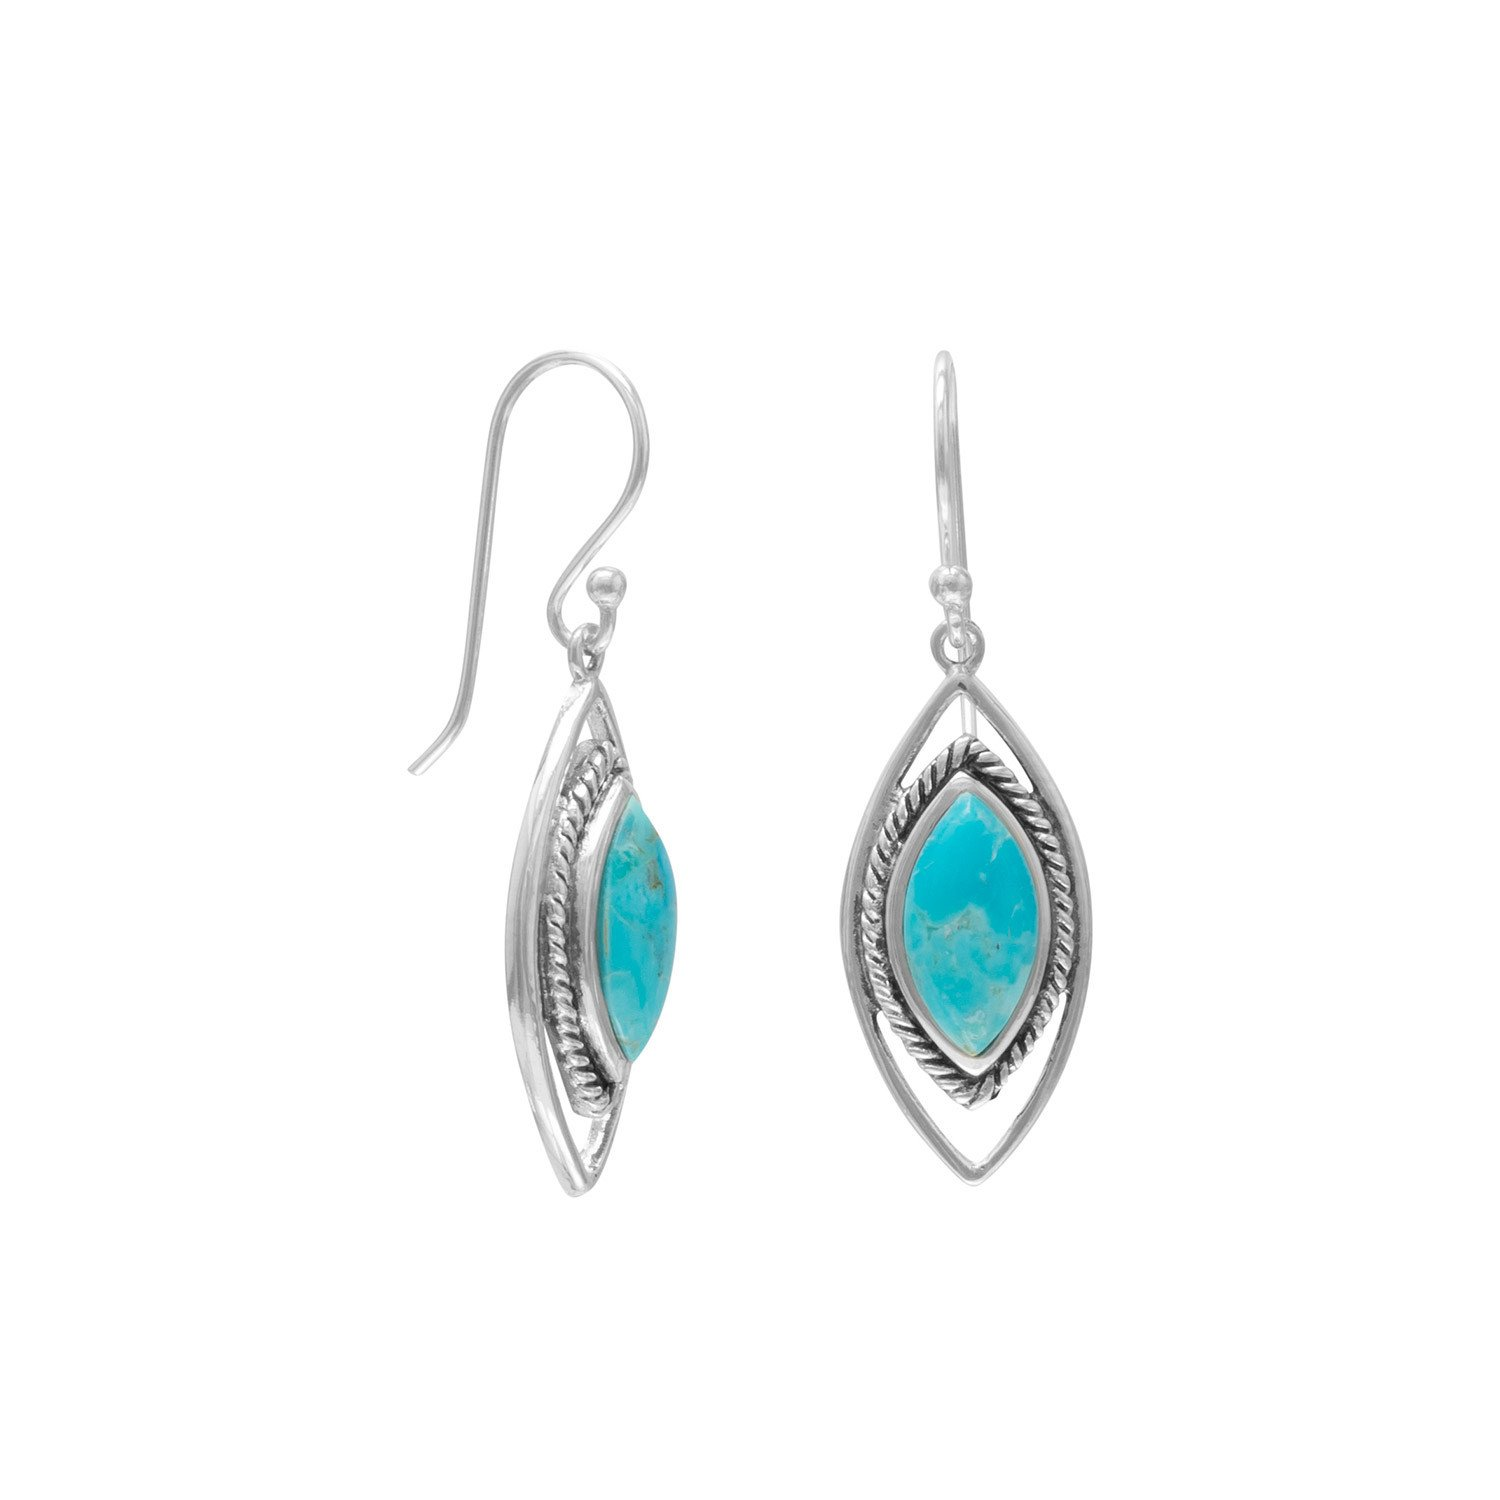 Oxidized Marquise Reconstituted Turquoise Earrings